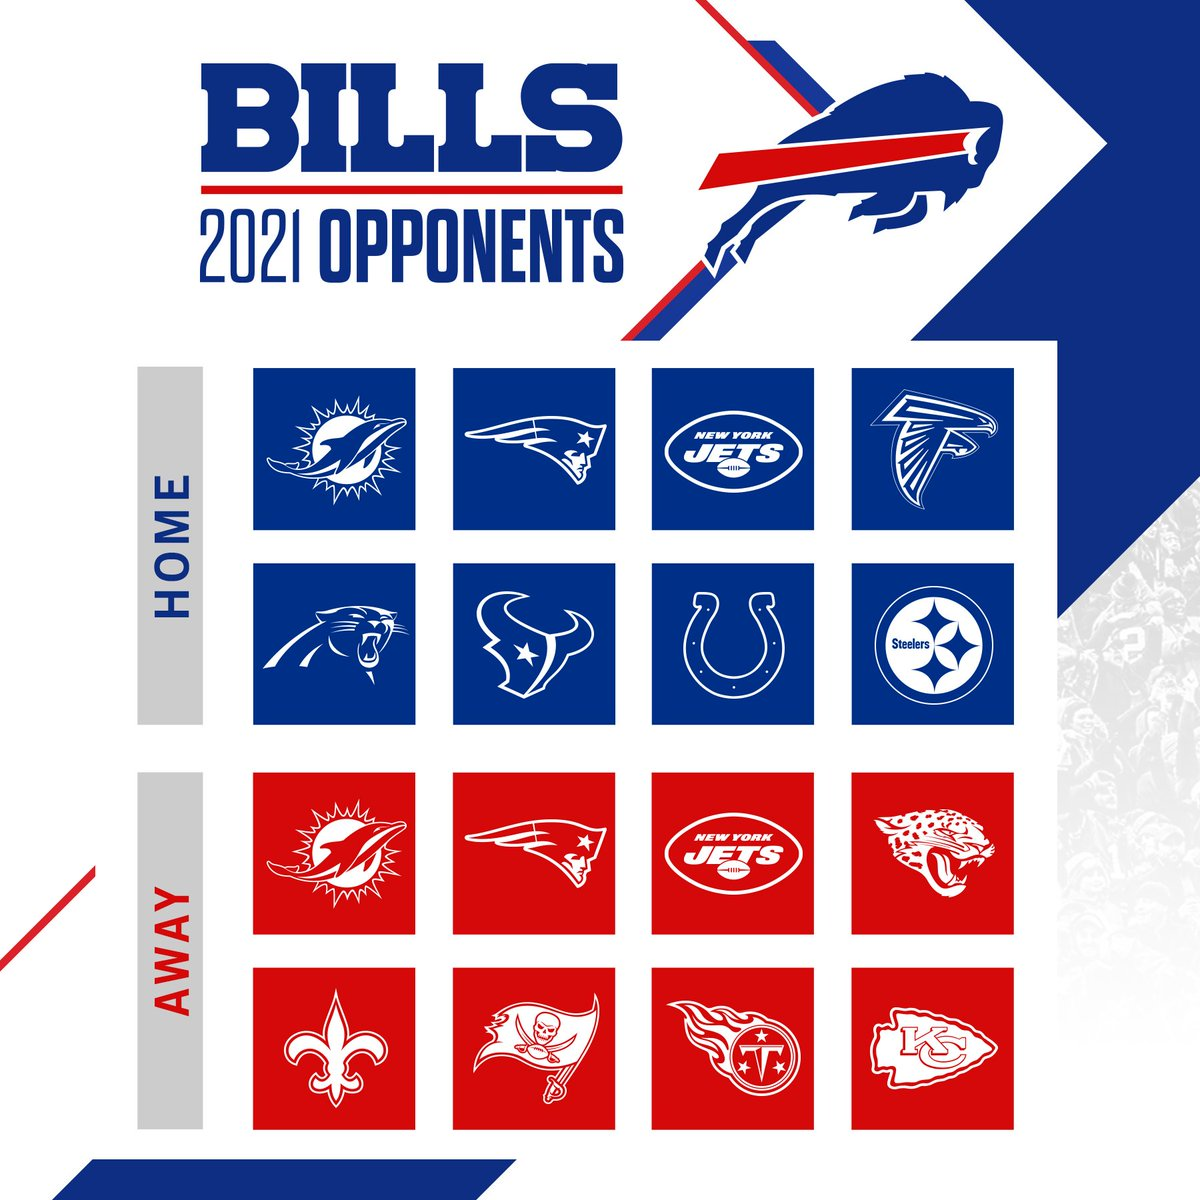 And after looking at the 2021 opponents...  I predict that #BillsMafia will have 4-5 #Primetime games.  Beginning with #BUFvsKC:The Rematch will be the Season Opener, #MIAvsBUF & #PITvsBUF on a Sunday Night, with #INDvsBUF & #BUFvsTB on a Monday Night.  #BUFvsNO on a Saturday.